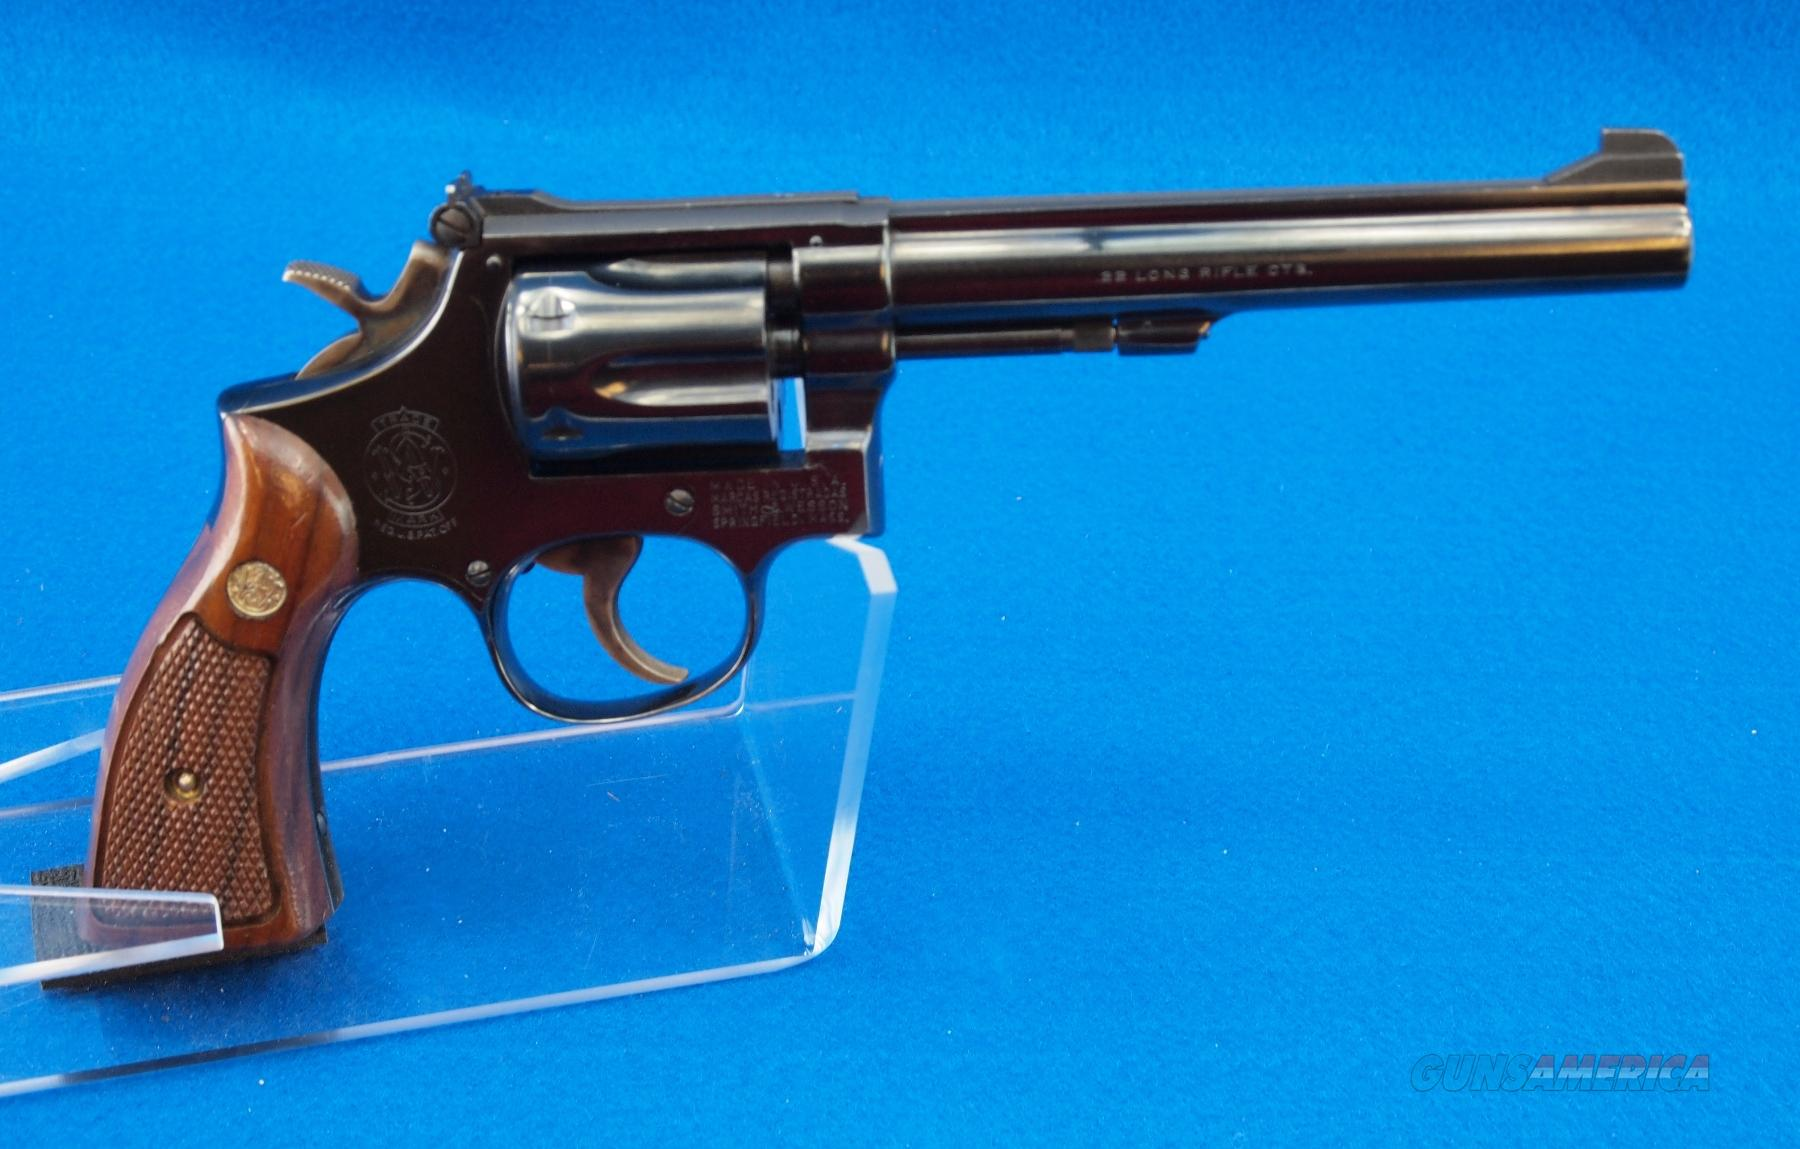 Smith & Wesson model 17-3 .22LR  Guns > Pistols > Smith & Wesson Revolvers > Full Frame Revolver